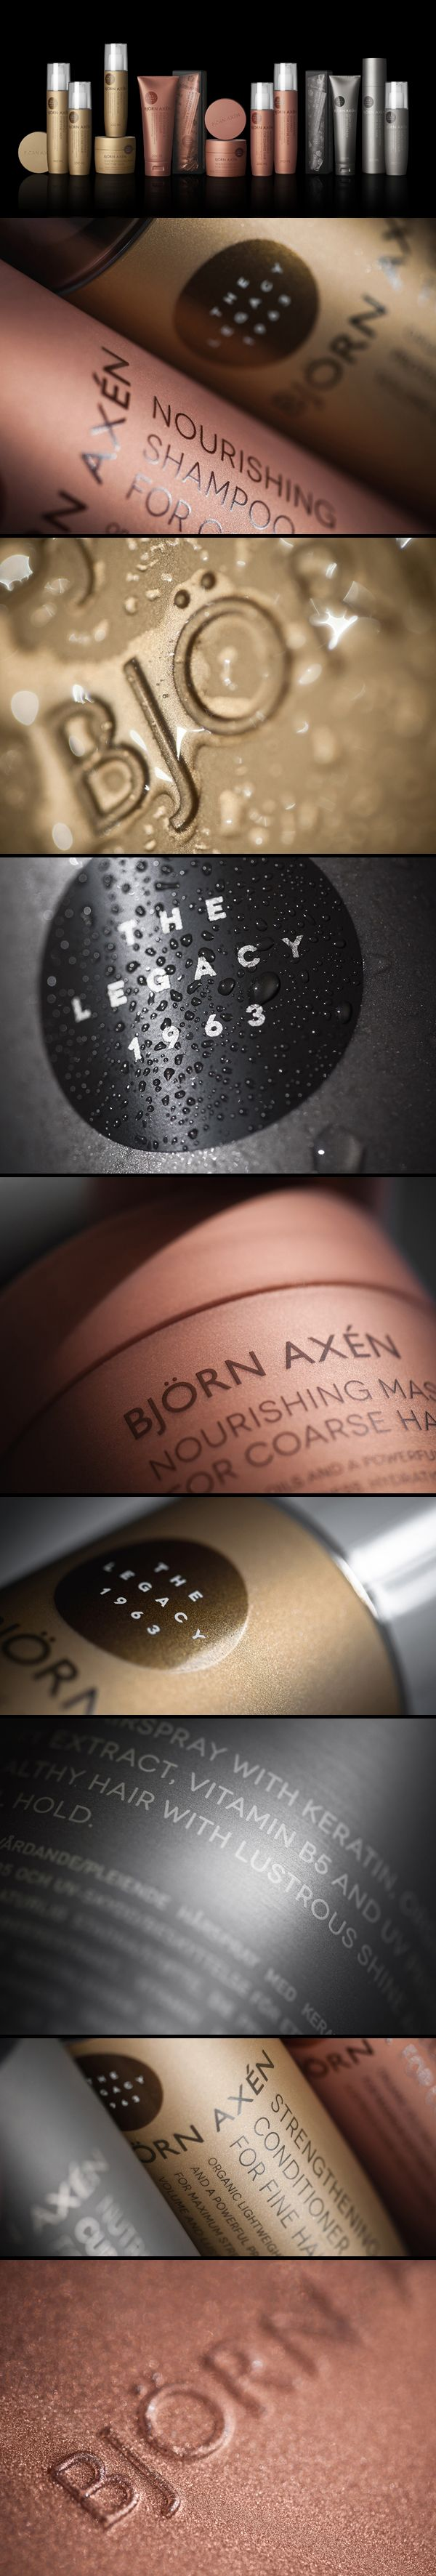 """Packaging for """"The Legacy 1963"""" – a series of premium hair care products from Björn Axén"""